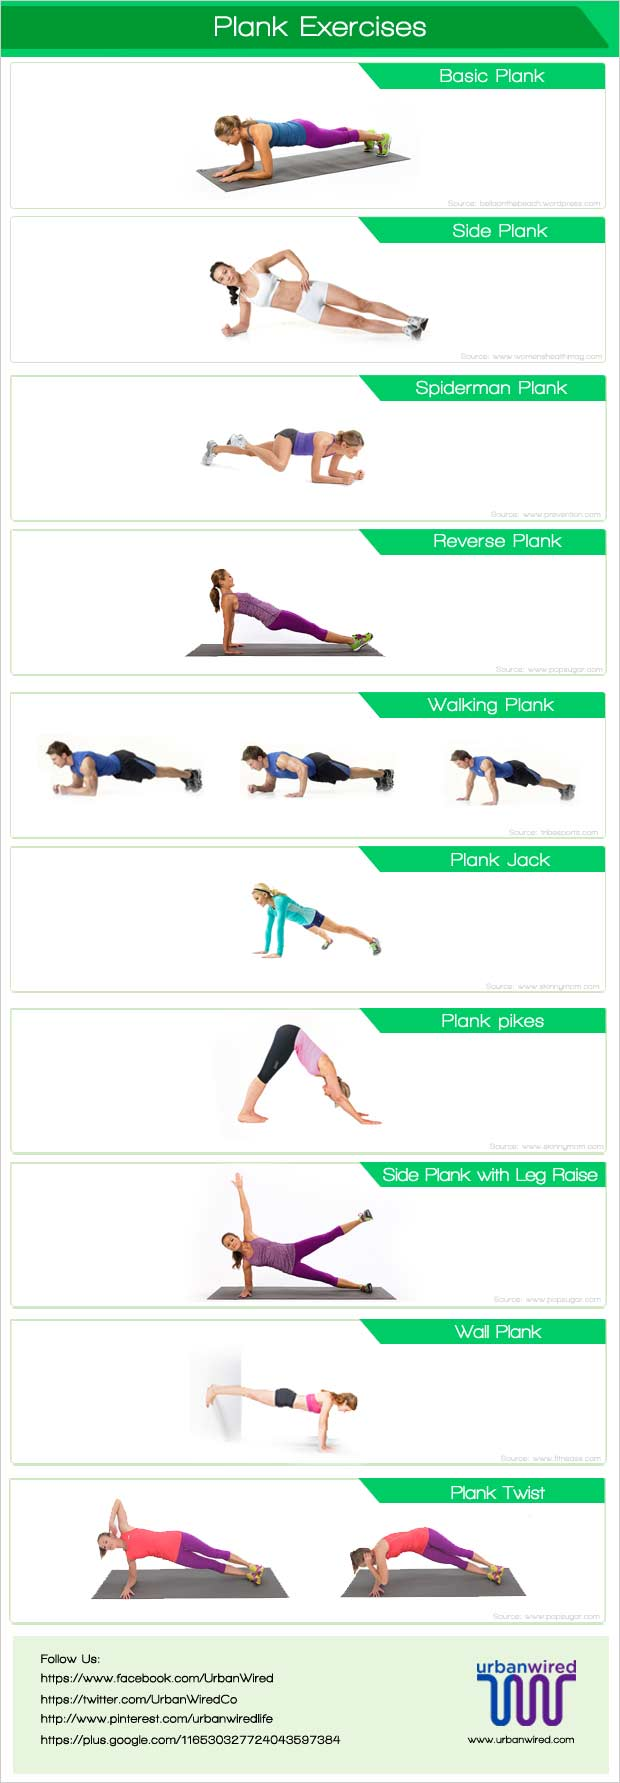 plank-exercise-types